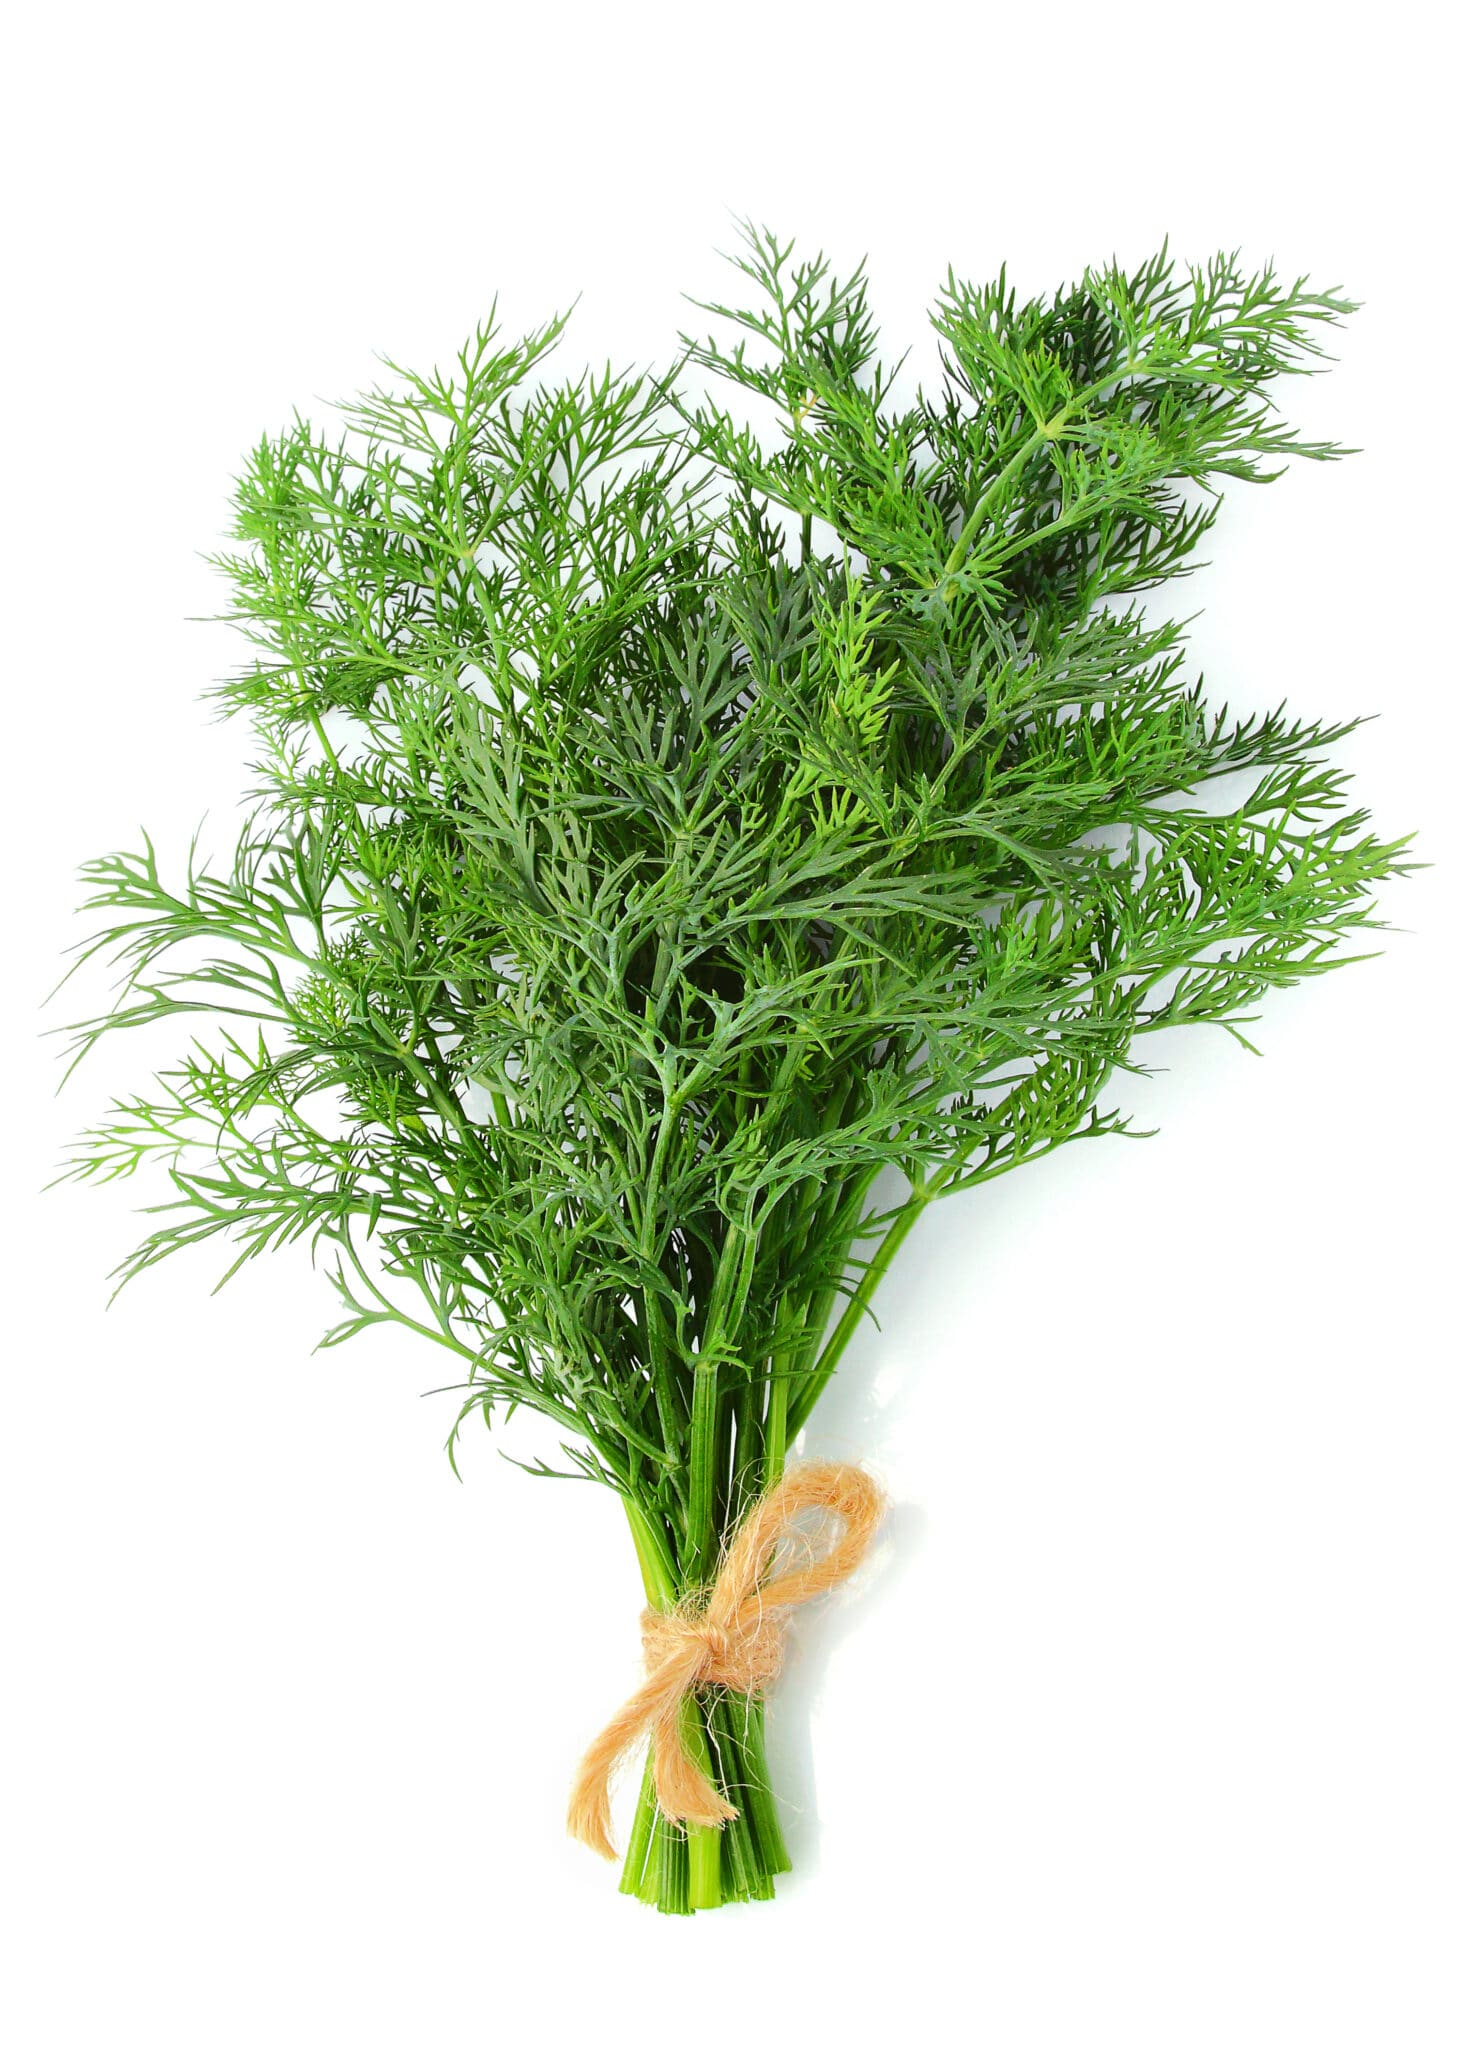 Bunch of dill isolated vertically on a white background.